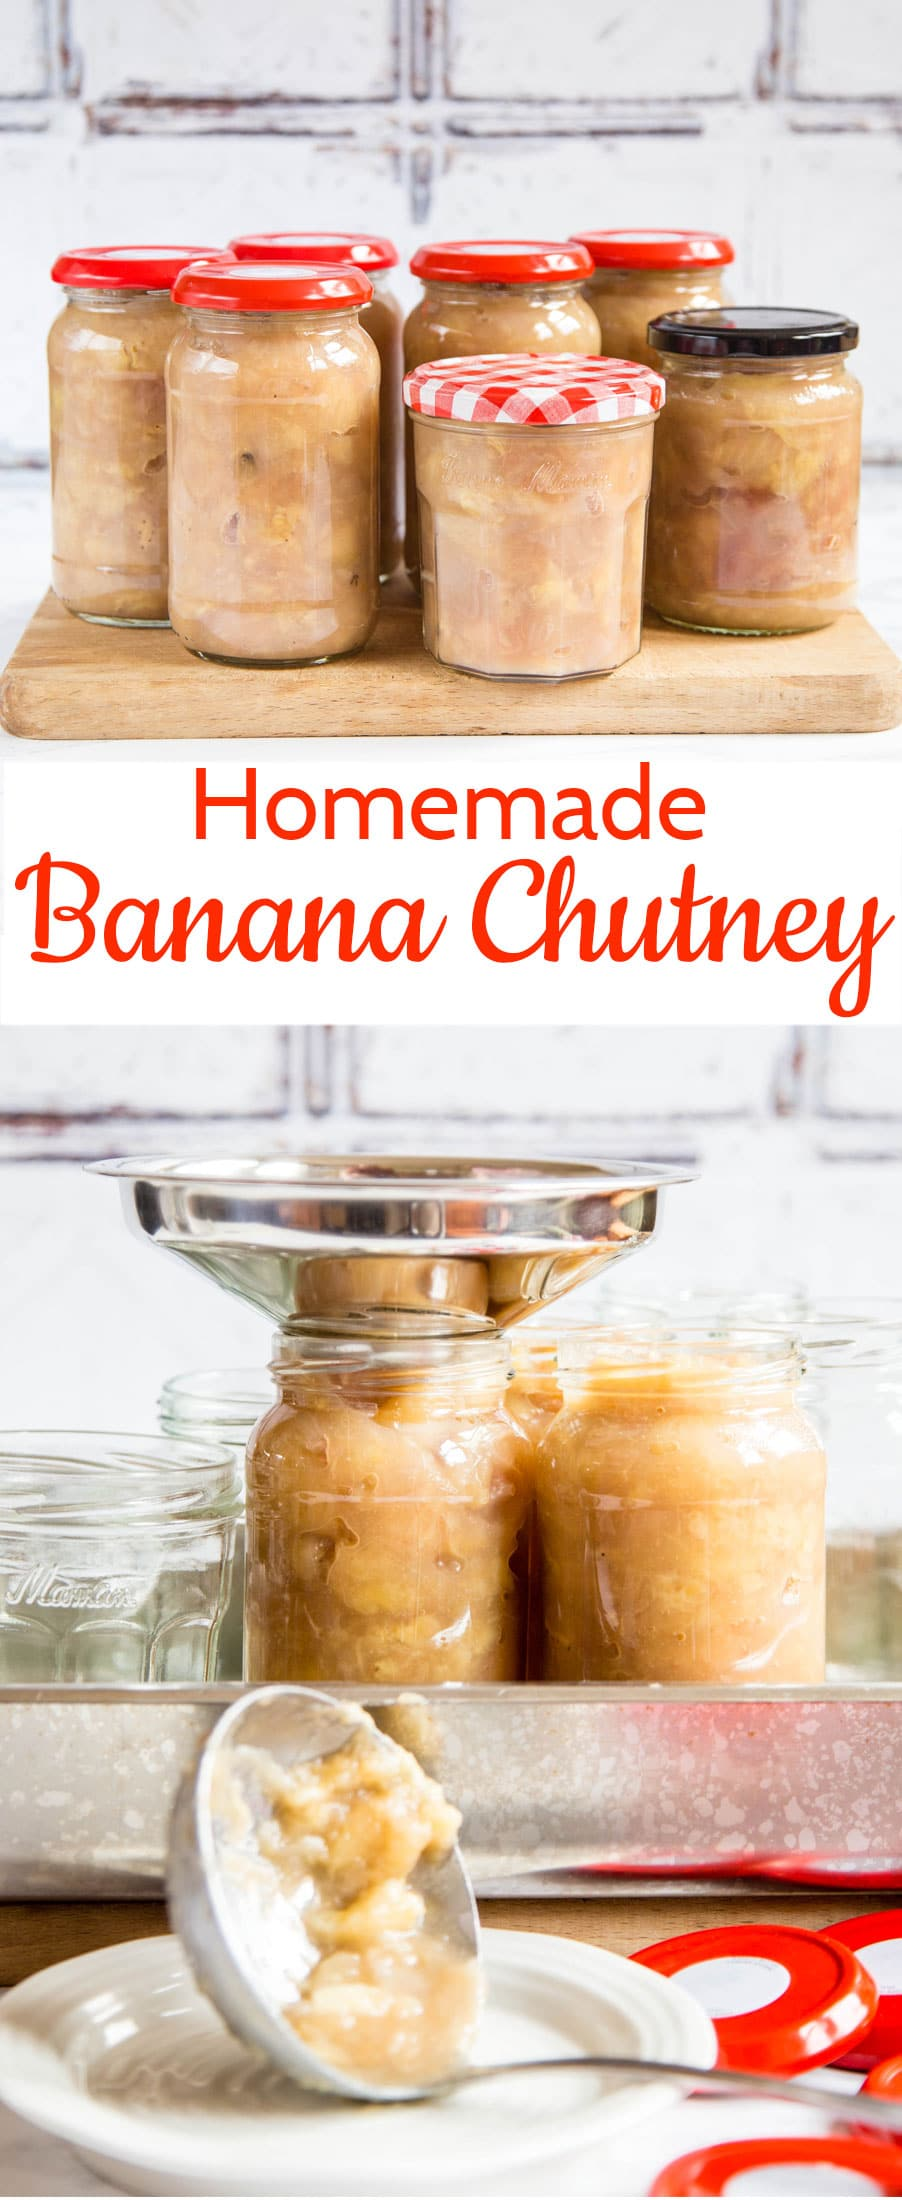 Banana chutney is so easy to make and the perfect accompaniment to curries, rice and dhals. The ideal preserve for a chutney novice.